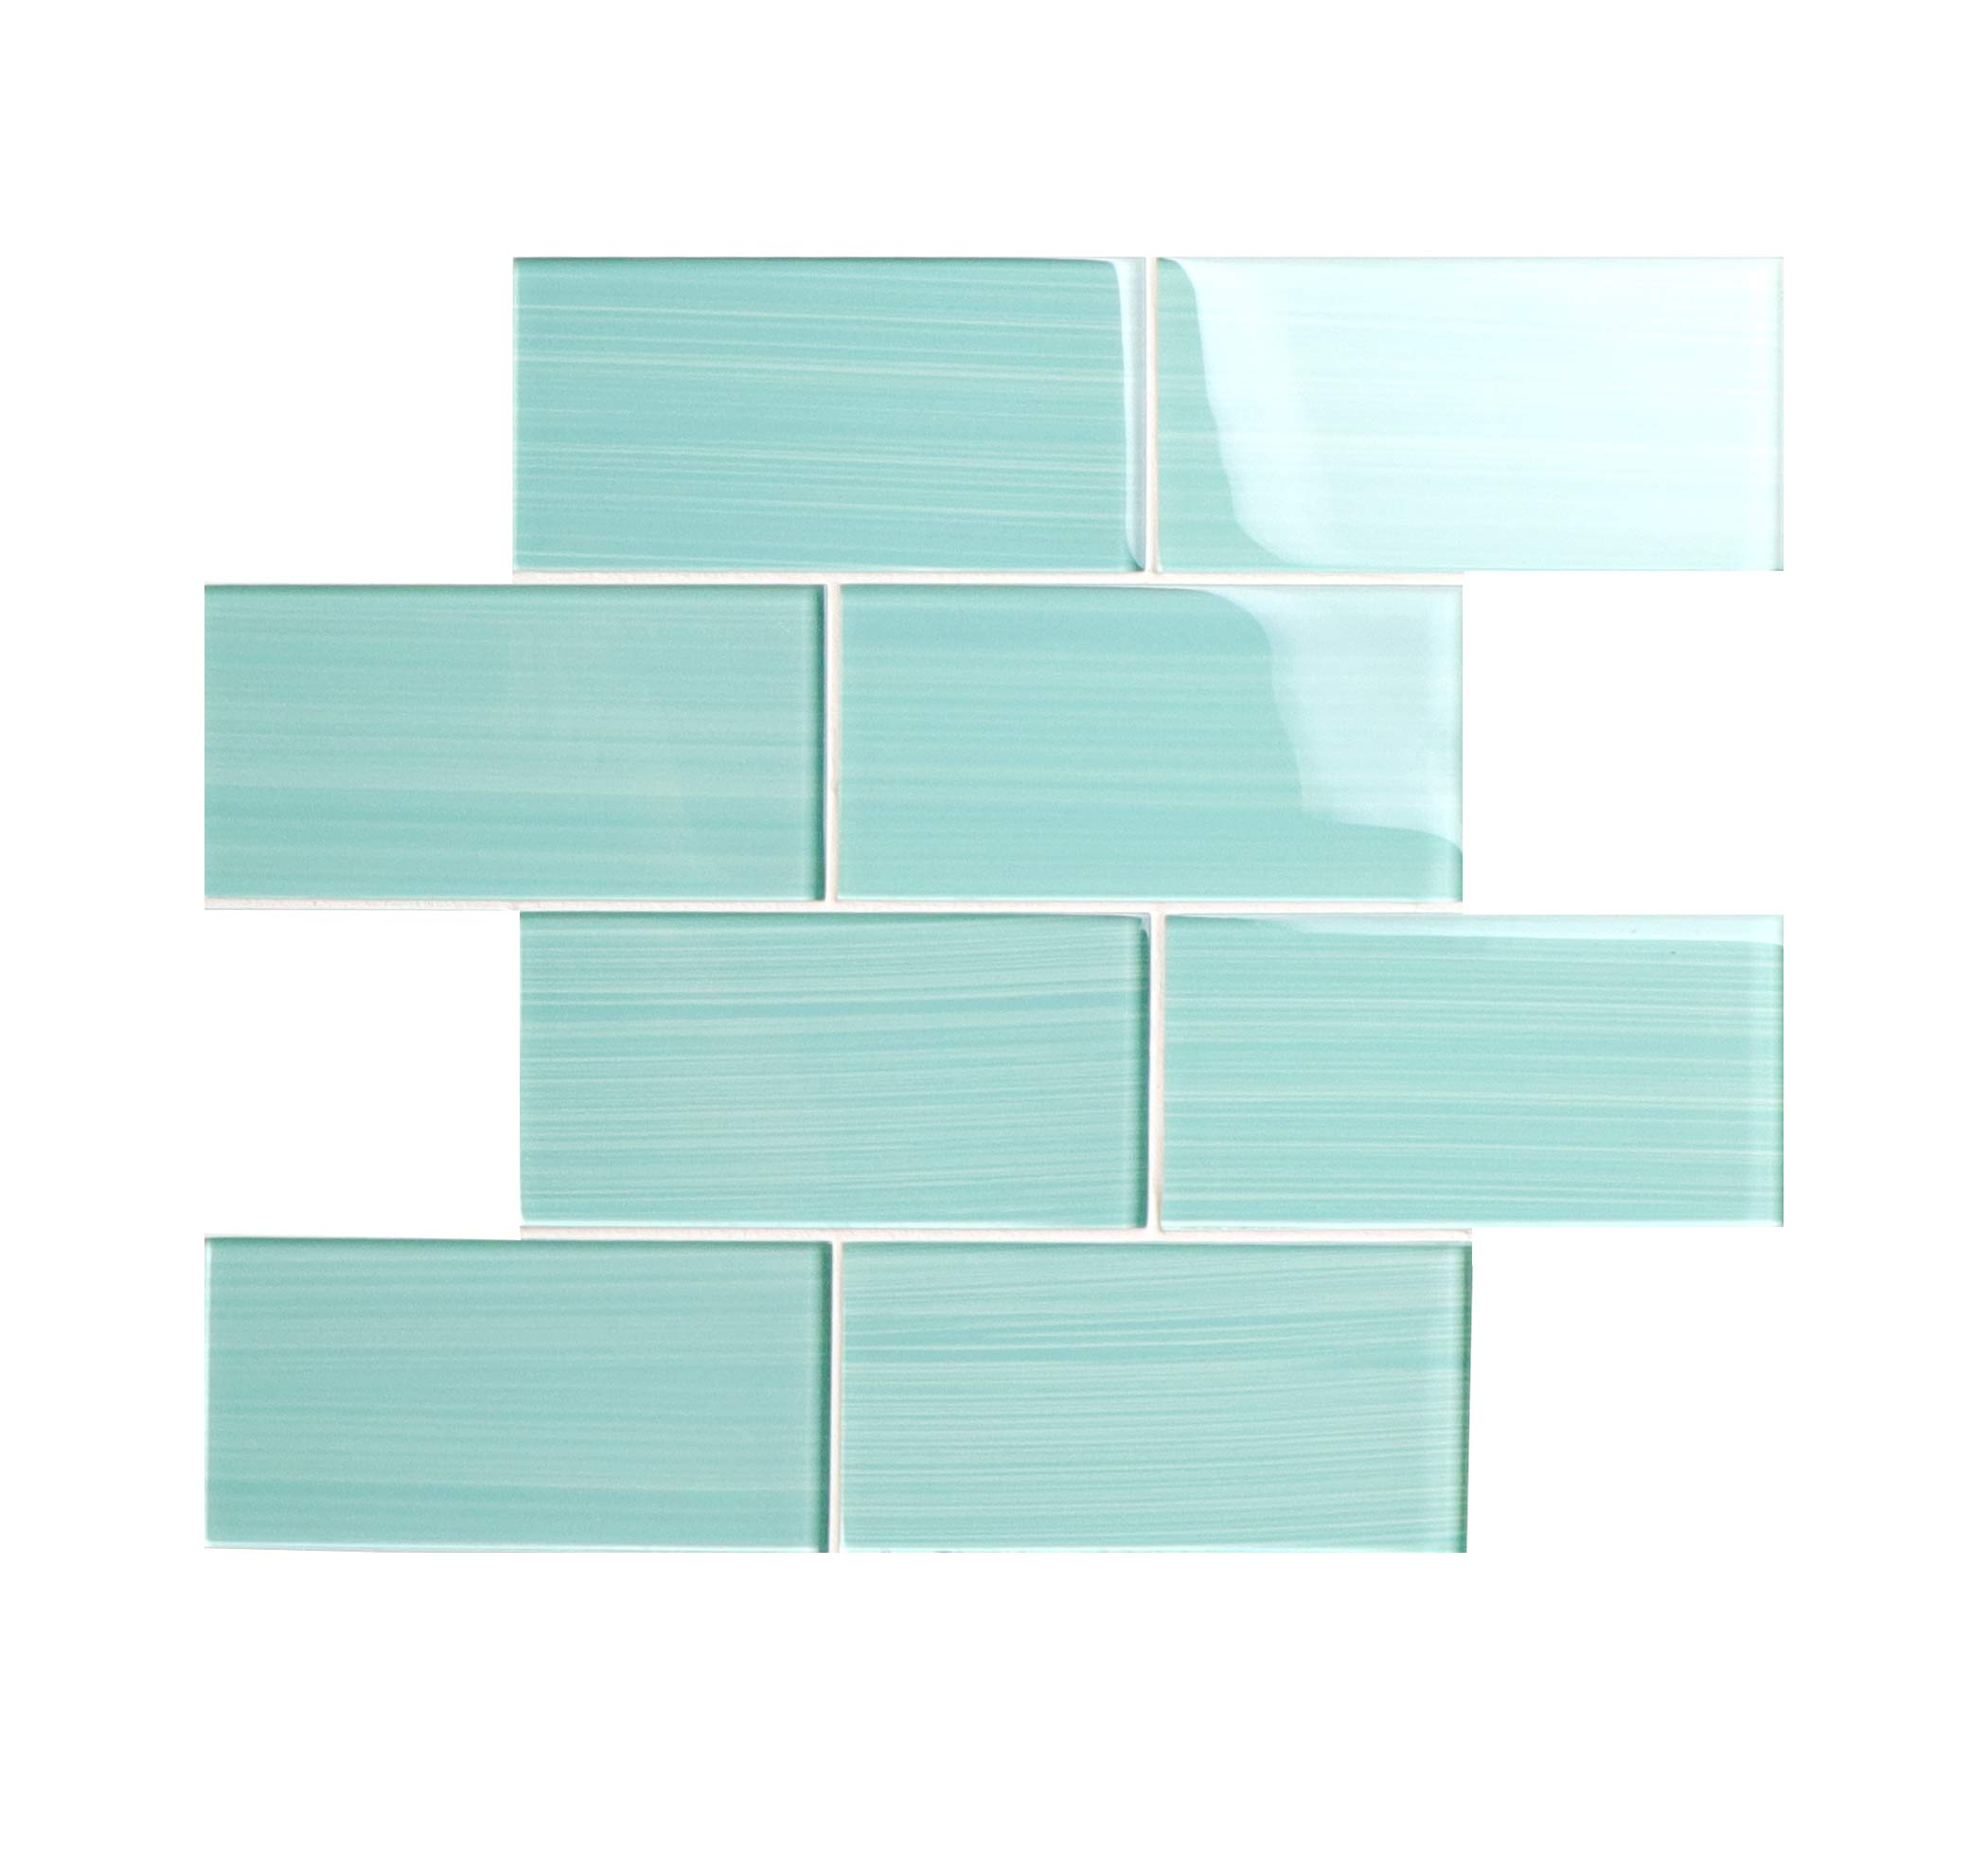 Glass Subway Backsplash Tile Bambu Hand Painted Series for Kitchen and Bathroom by WS Tiles - WST-06CH (3'' x 6'' Mosaic 5 SqFt, Light Teal) by WS Tiles